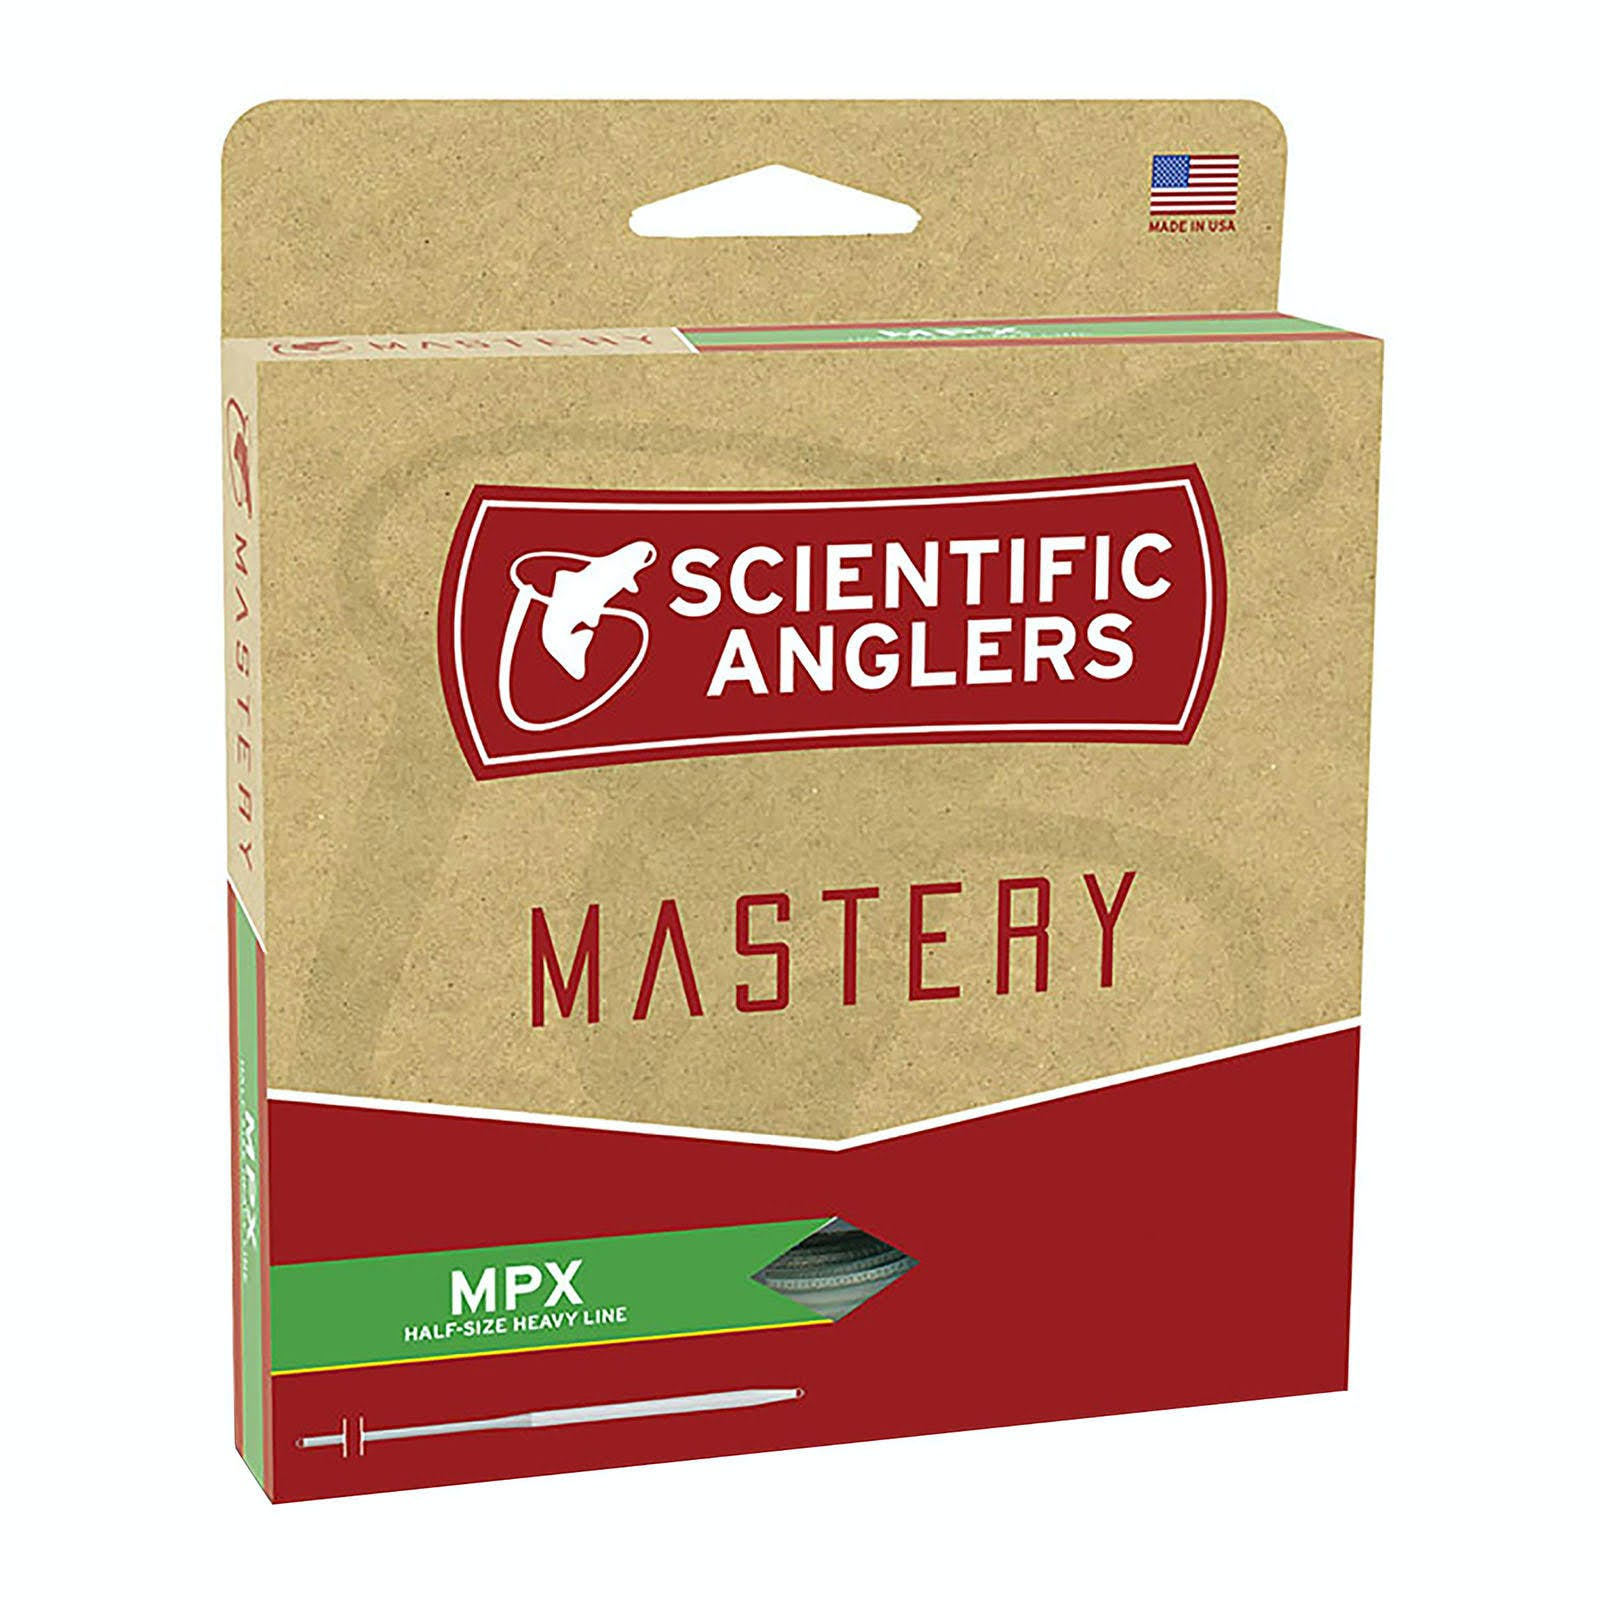 Scientific Anglers Mastery MPX Fly Line - Amber/Willow